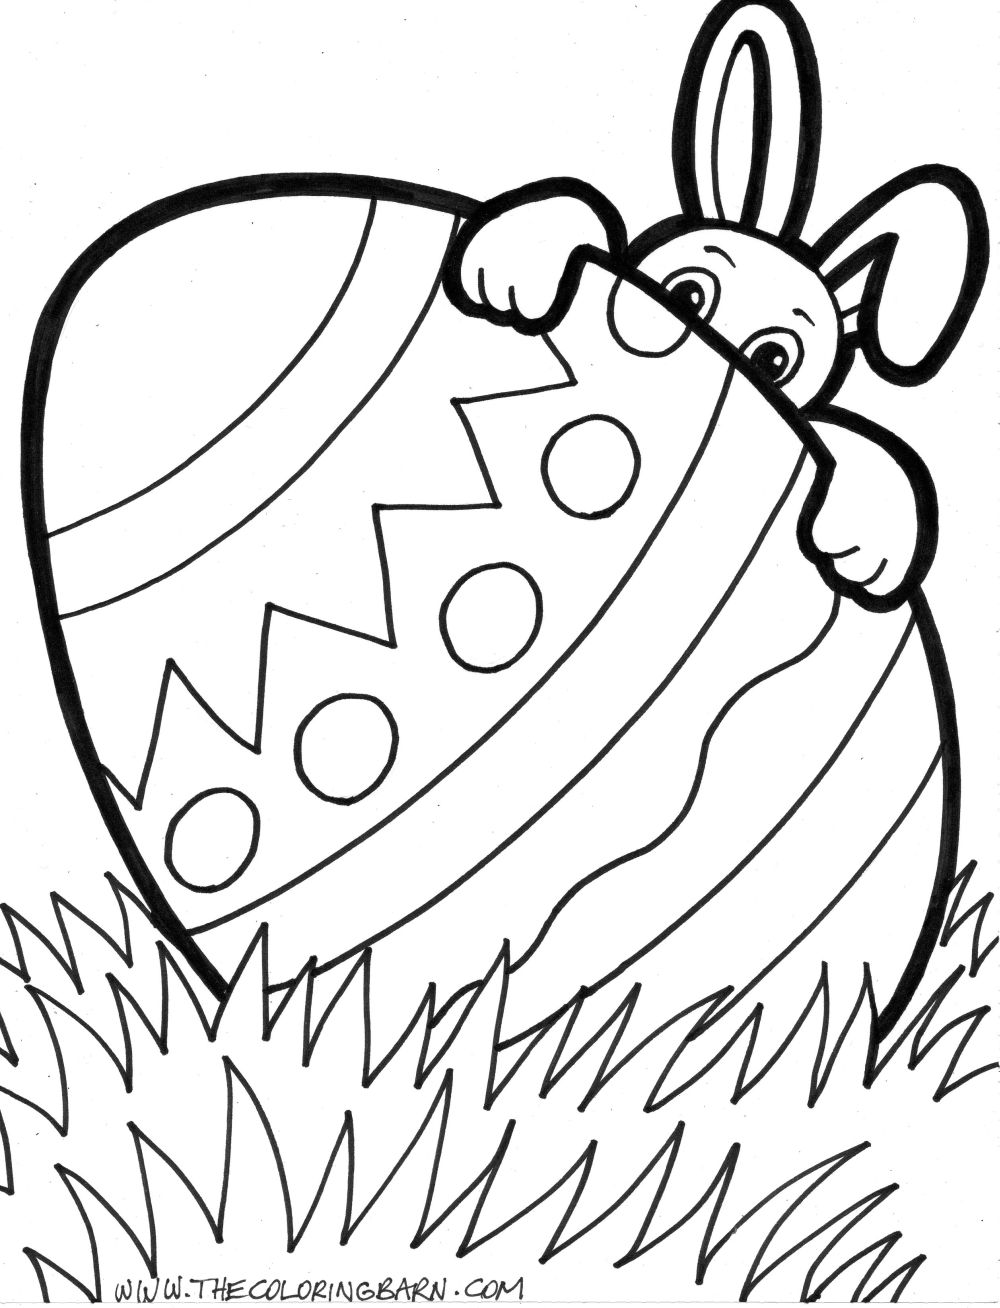 Coloring Pages To Print Easter : Easter coloring pages kids